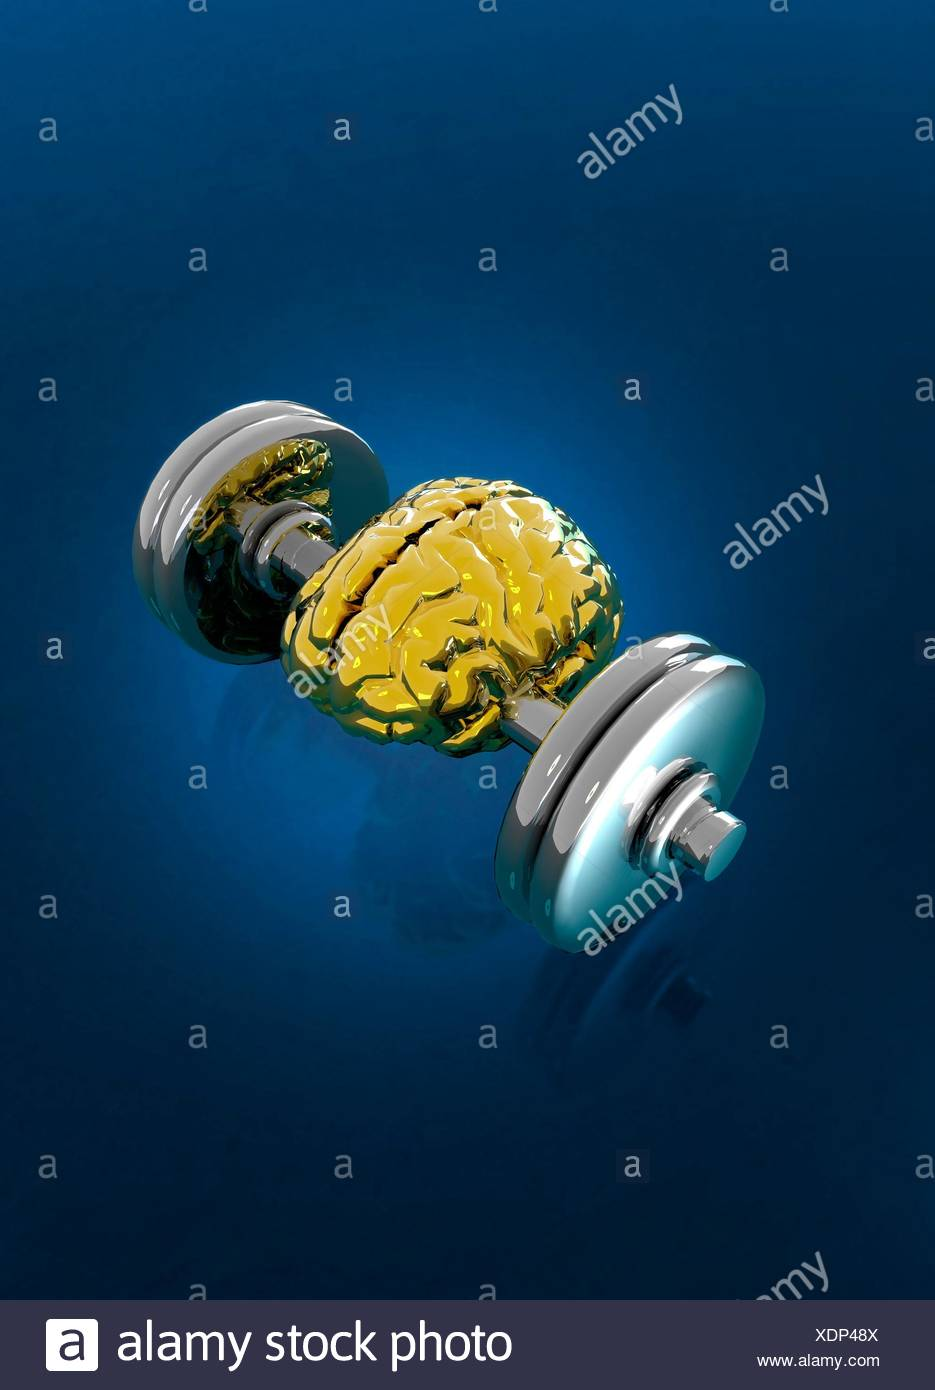 Human brain between weights on dumbbell, illustration. - Stock Image